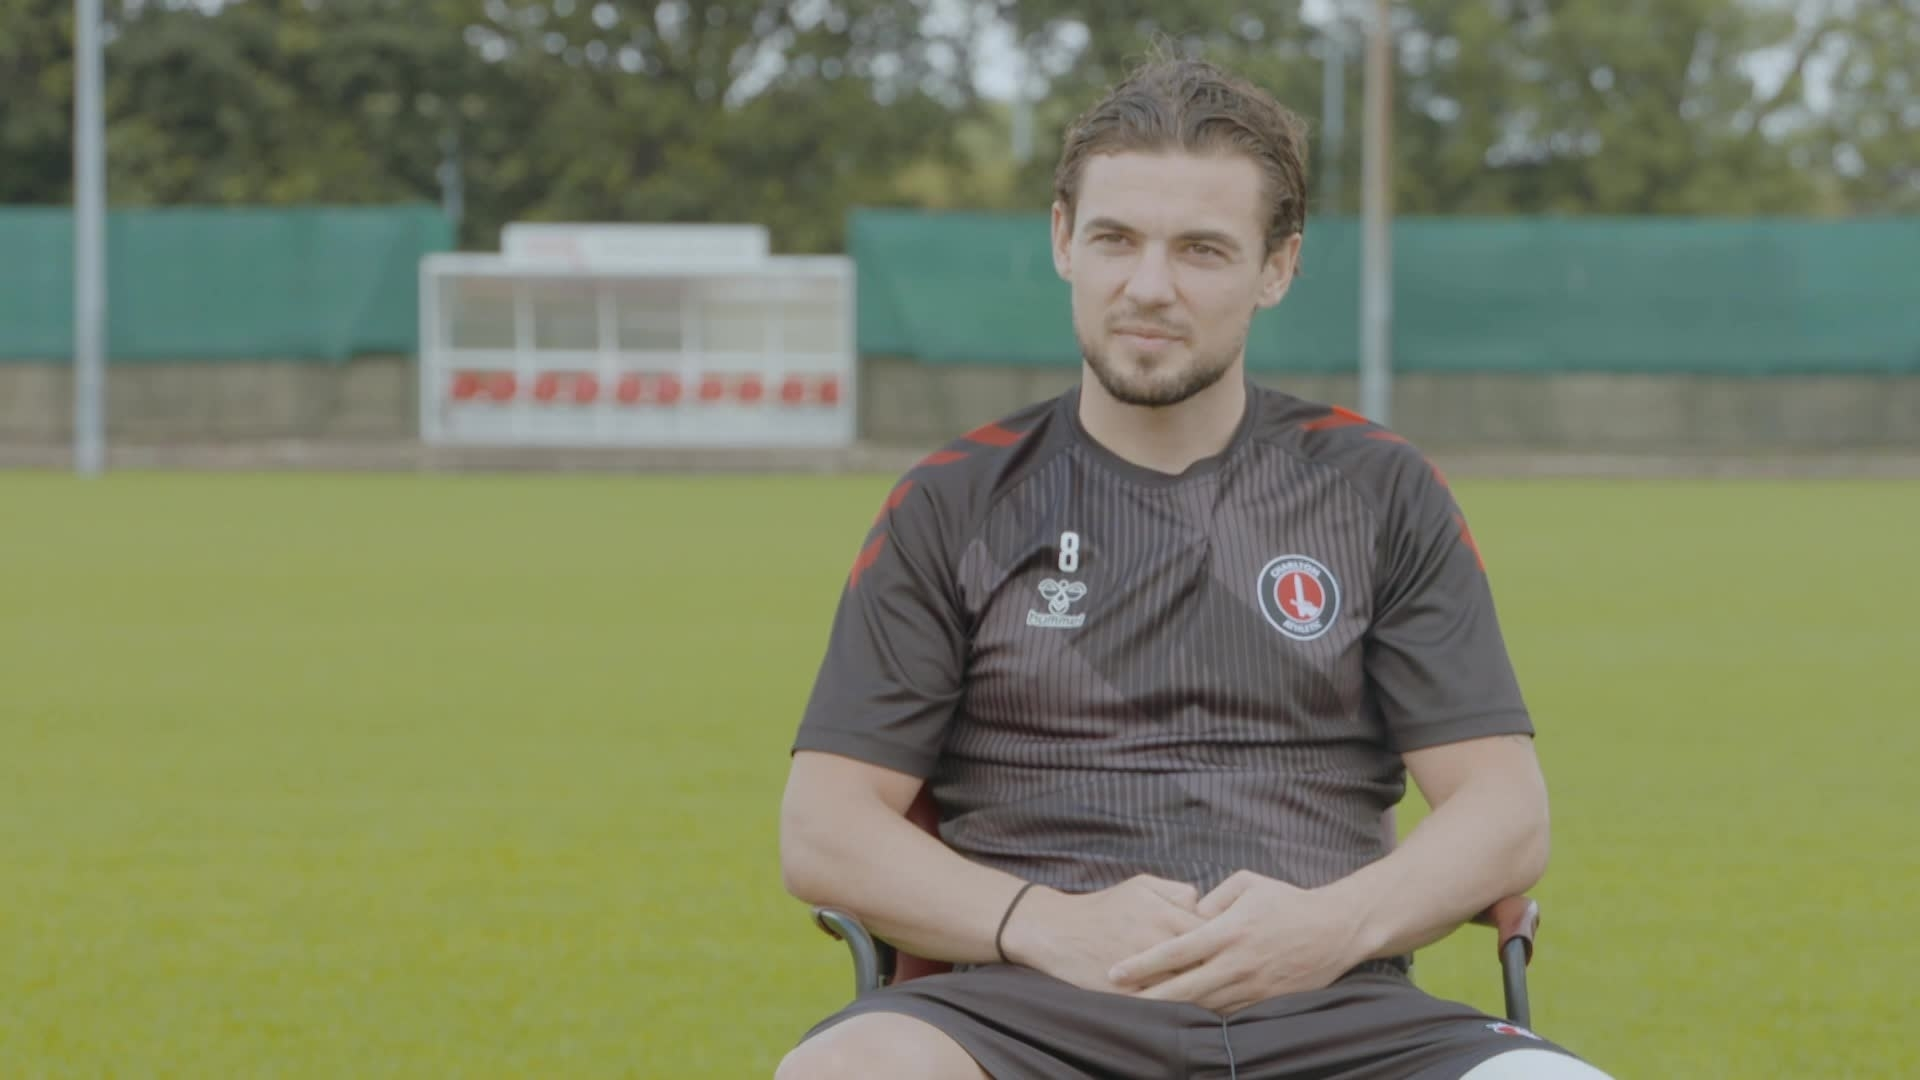 Jake Forster-Caskey on signing a new contract with Charlton (July 2021)